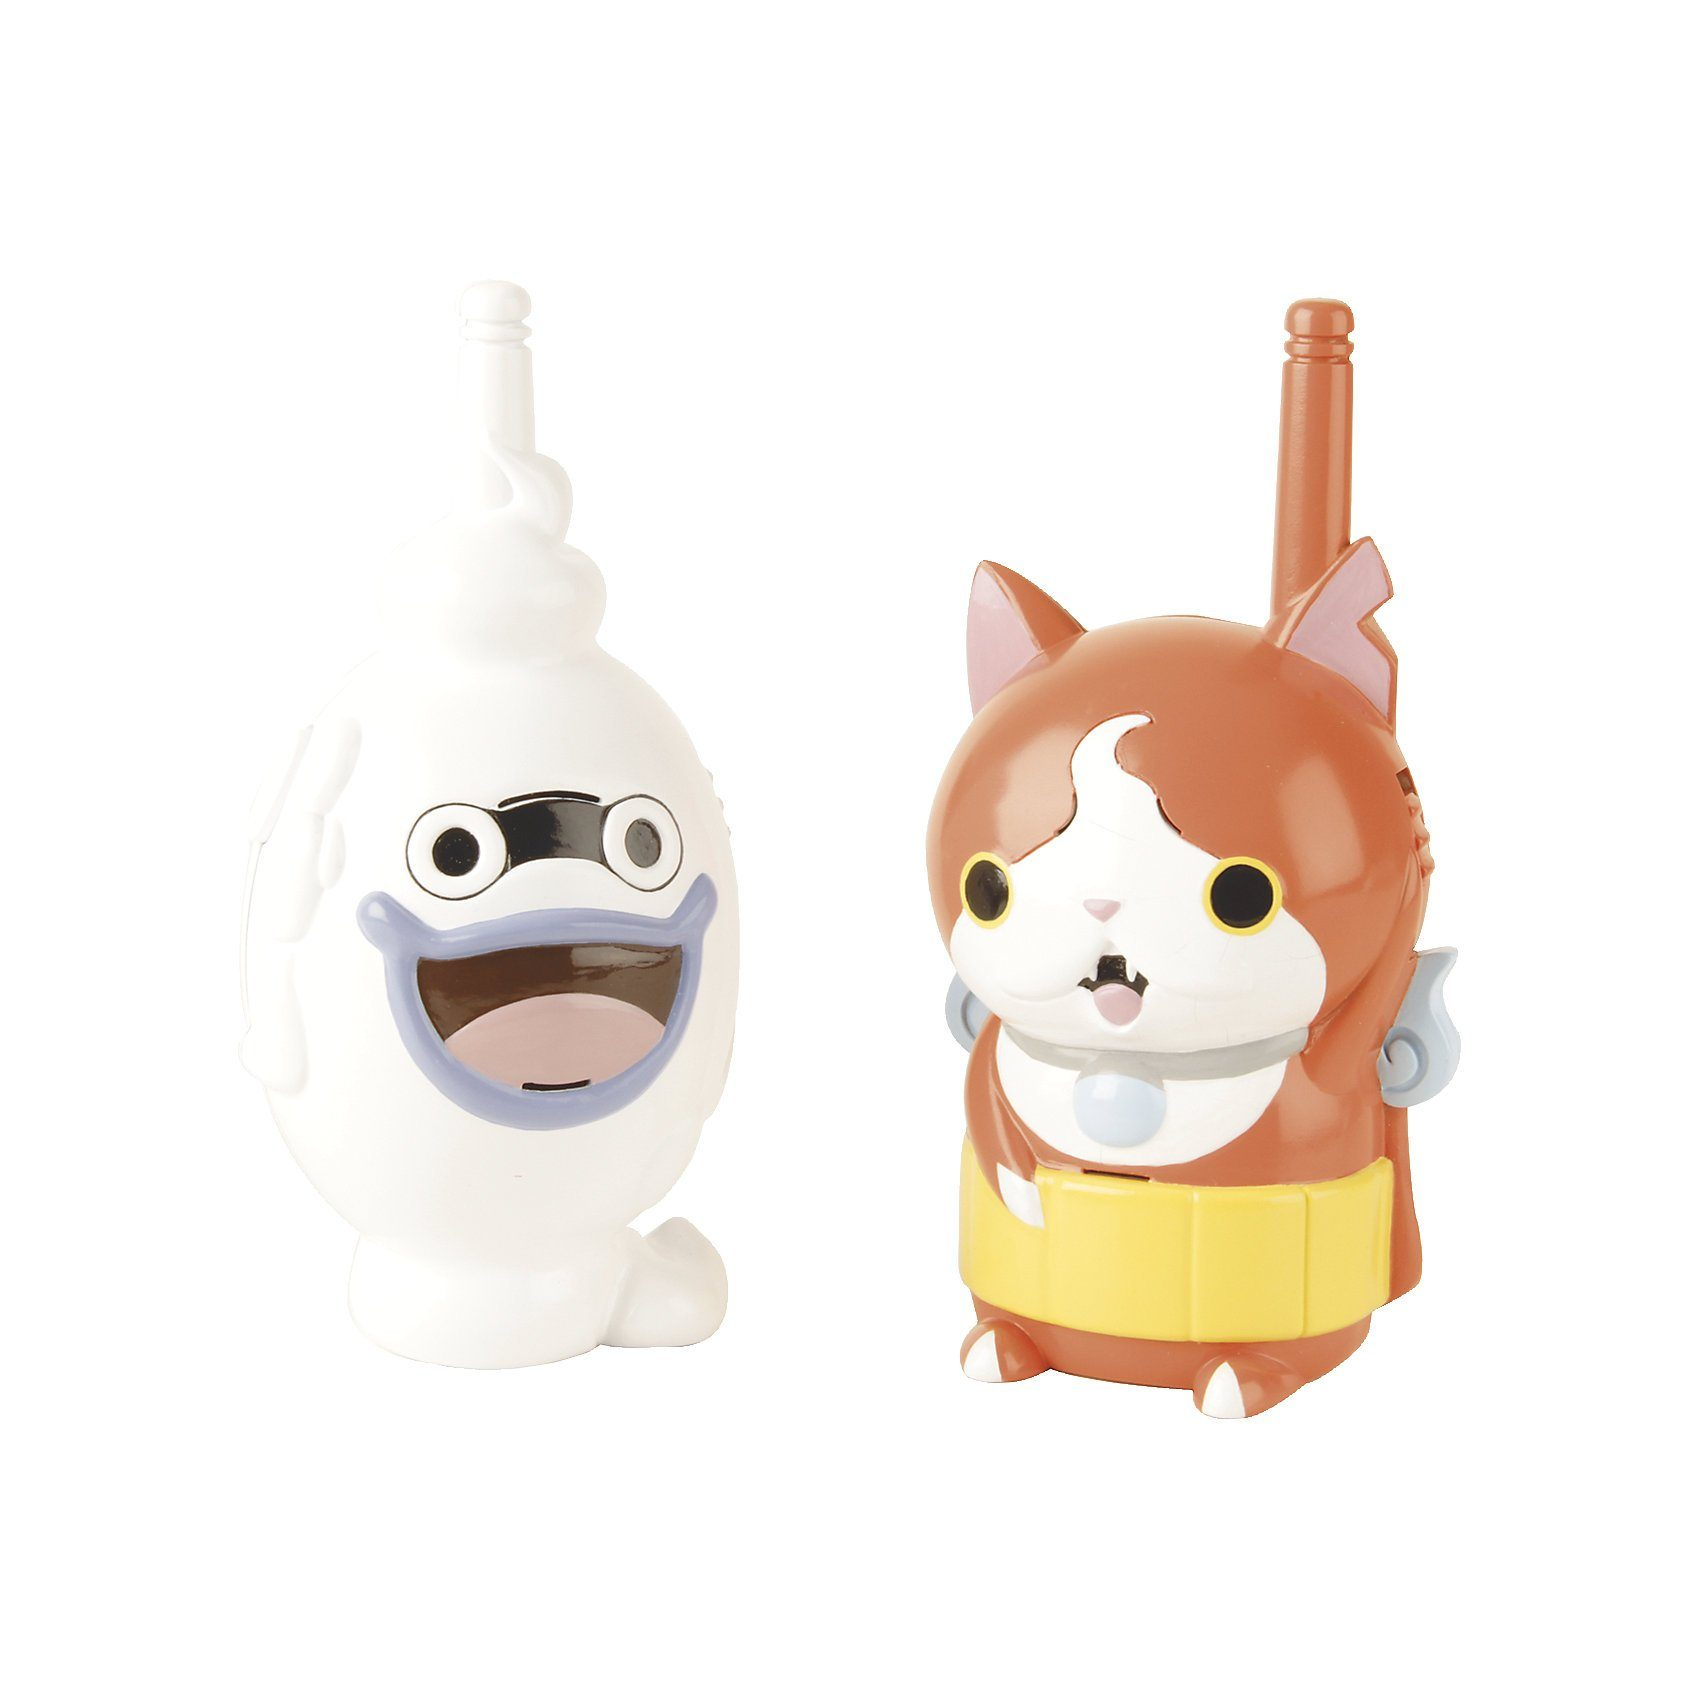 IMC TOYS Yo-Kai Watch - Walkie Talkie